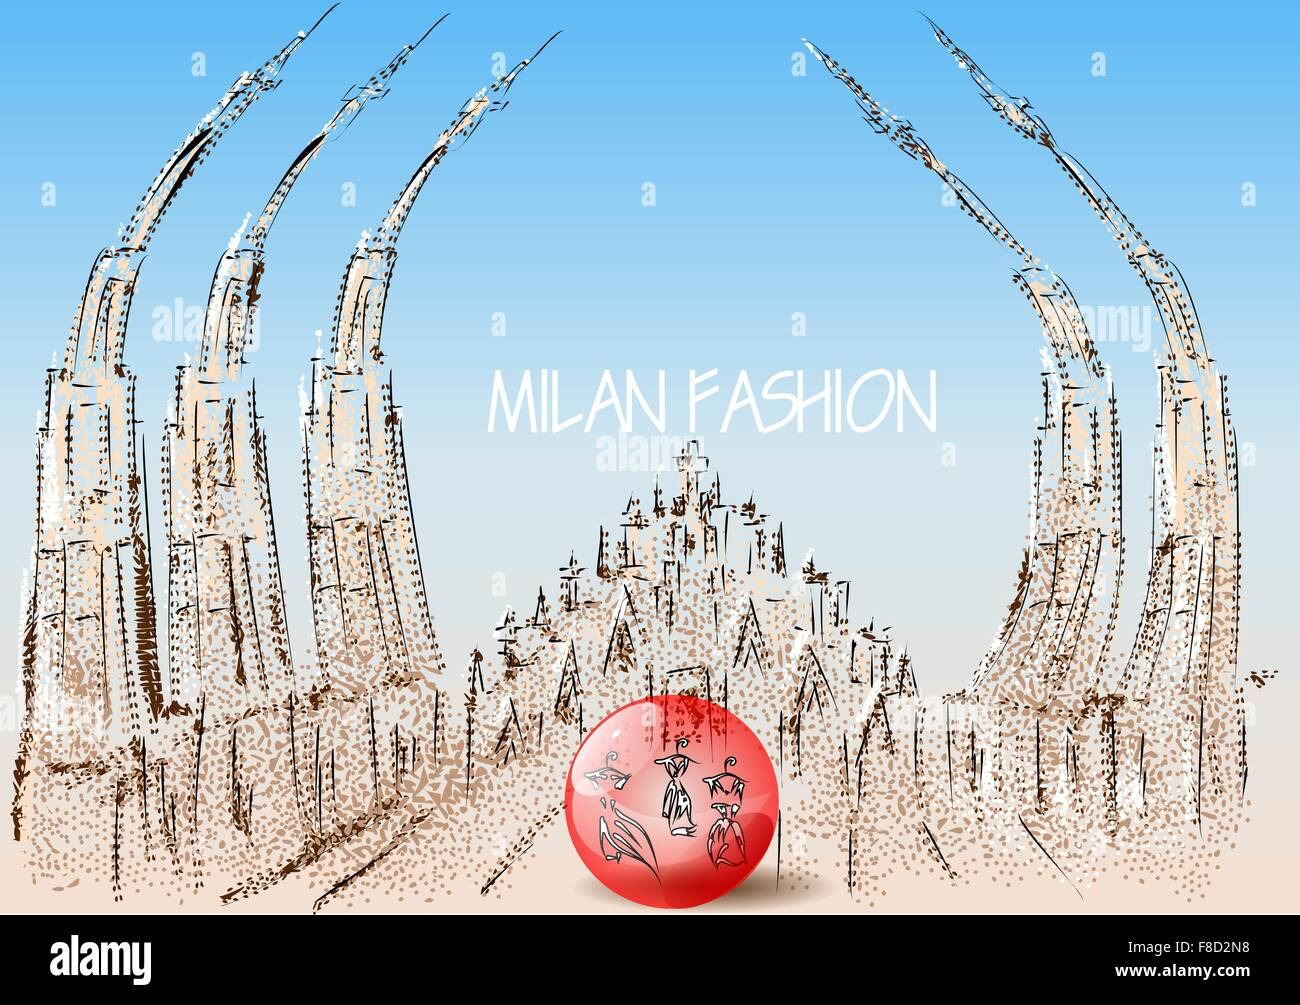 milan fashion. abstract roof of cathedral and ball with dress - Stock Vector